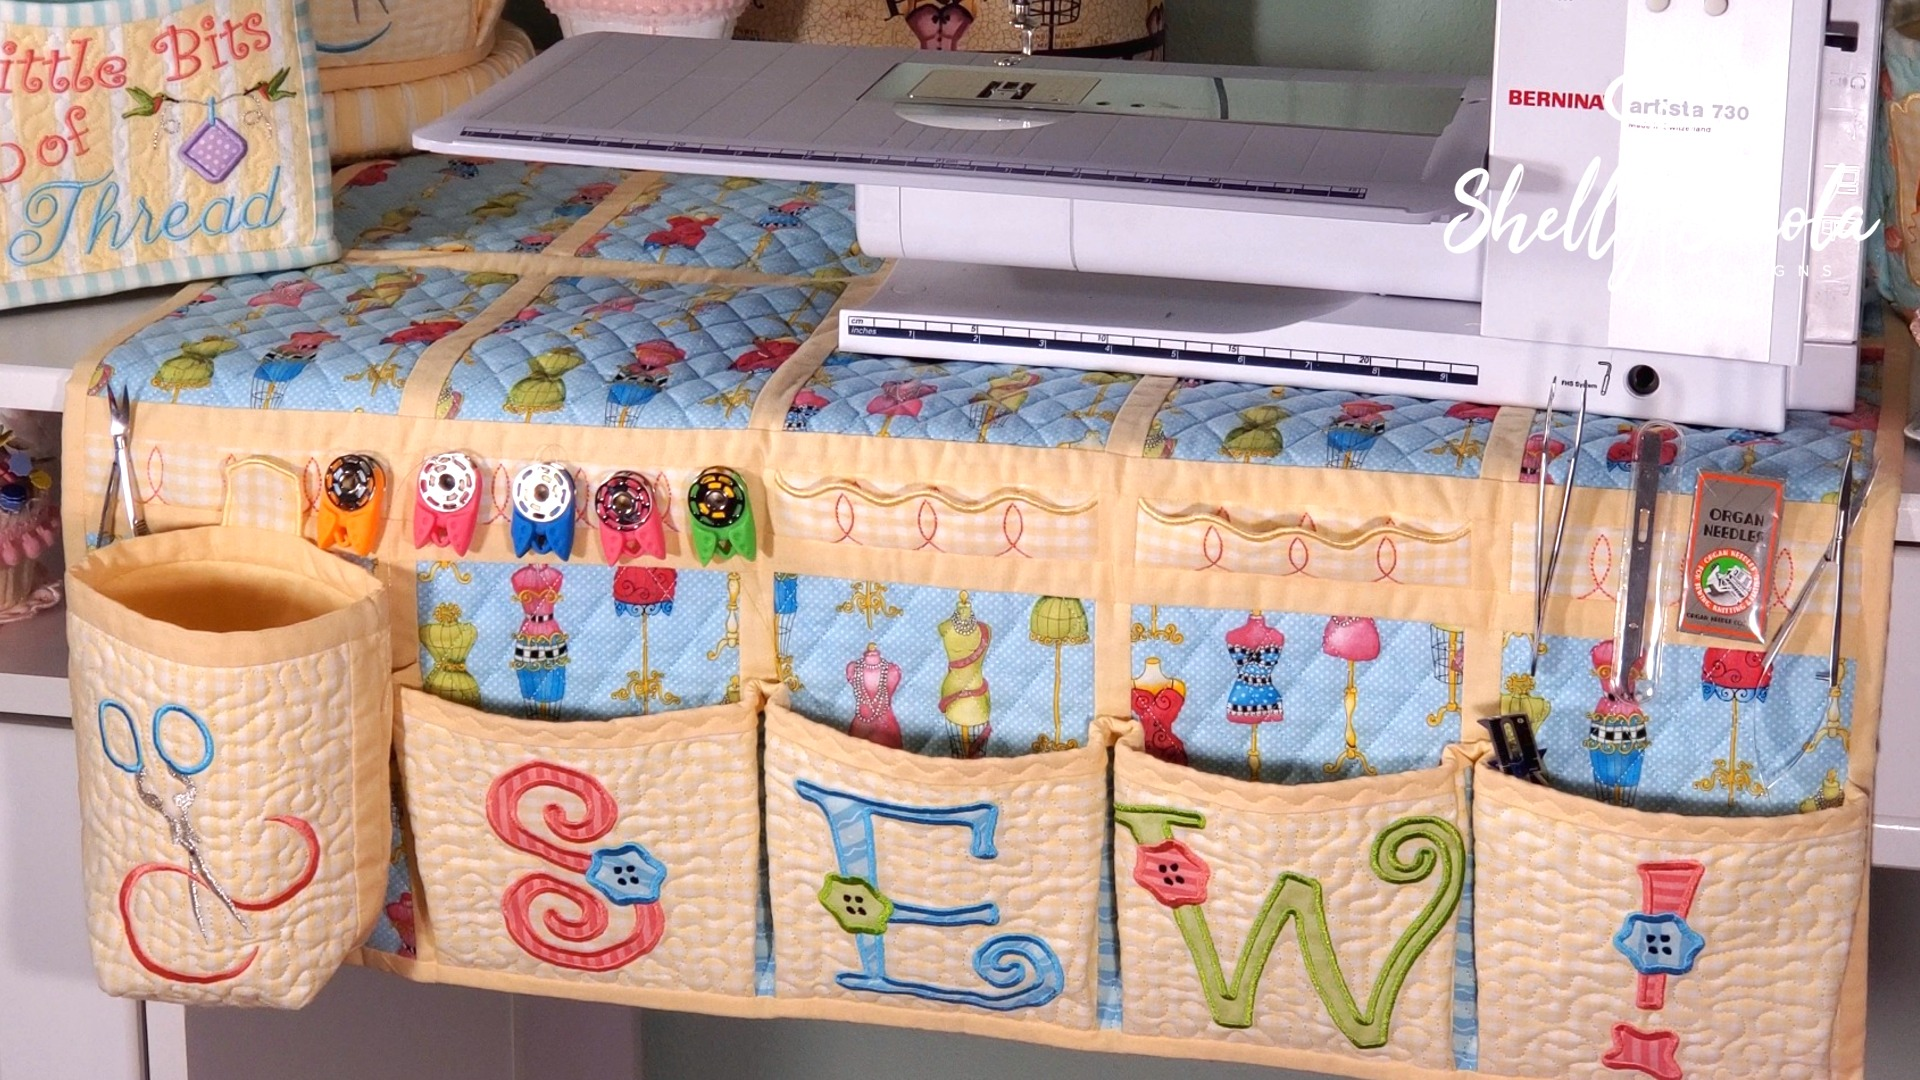 Sew Something by Shelly Smola